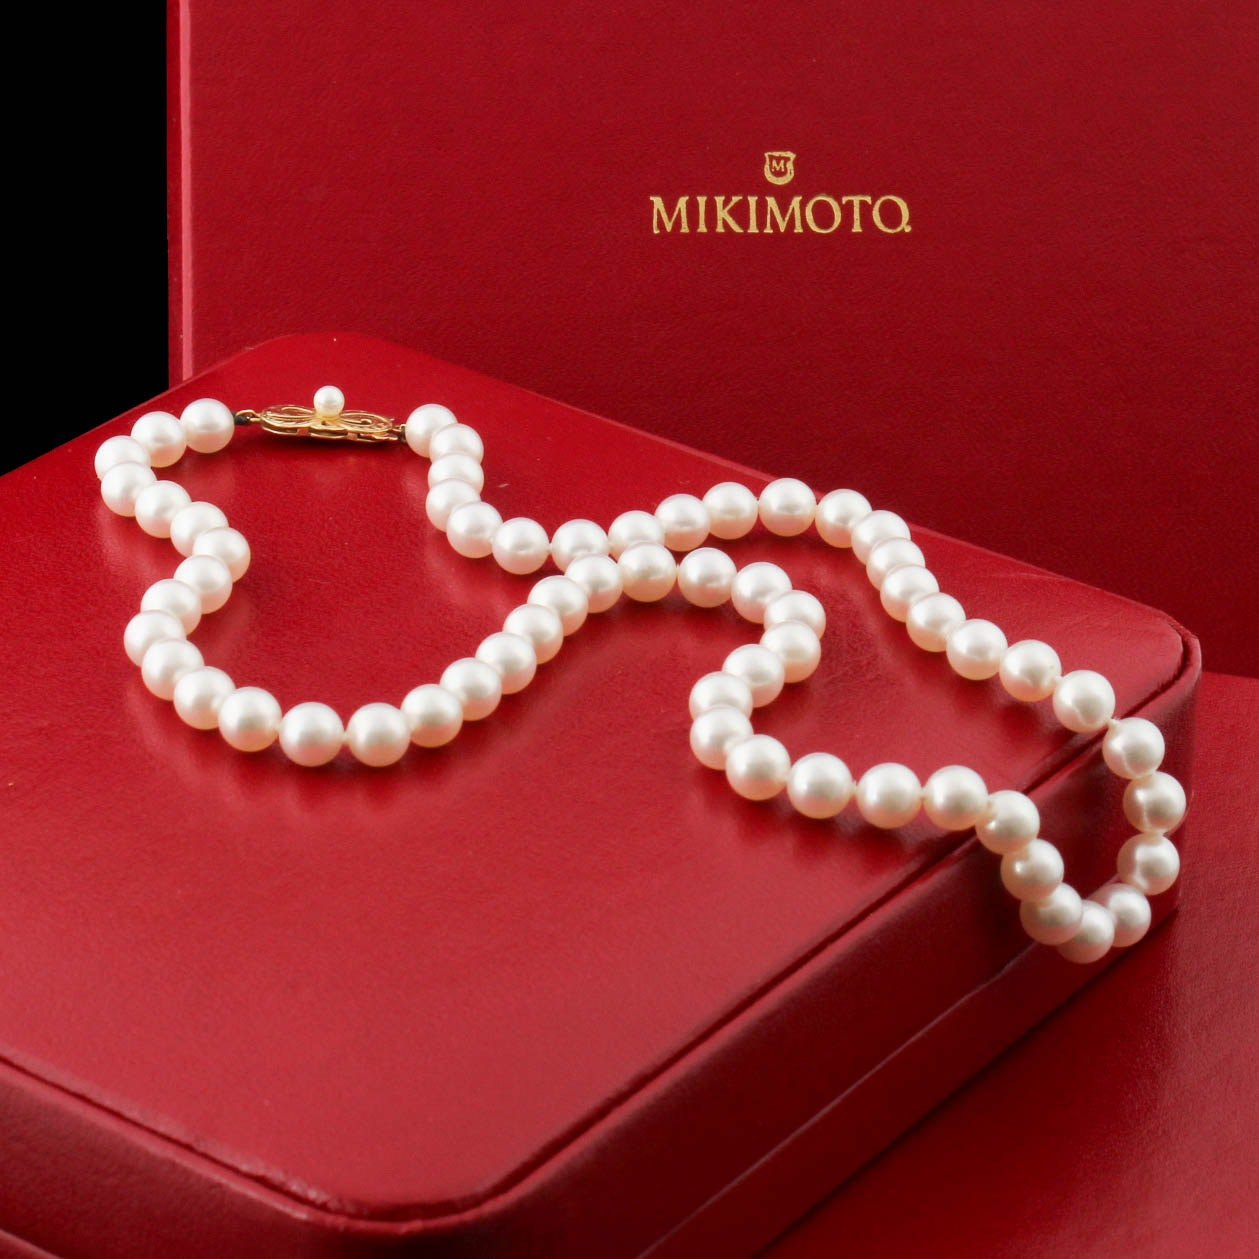 Mikimoto 18K Yellow Gold Clasped Cultured Akoya Pearl Necklace Strand